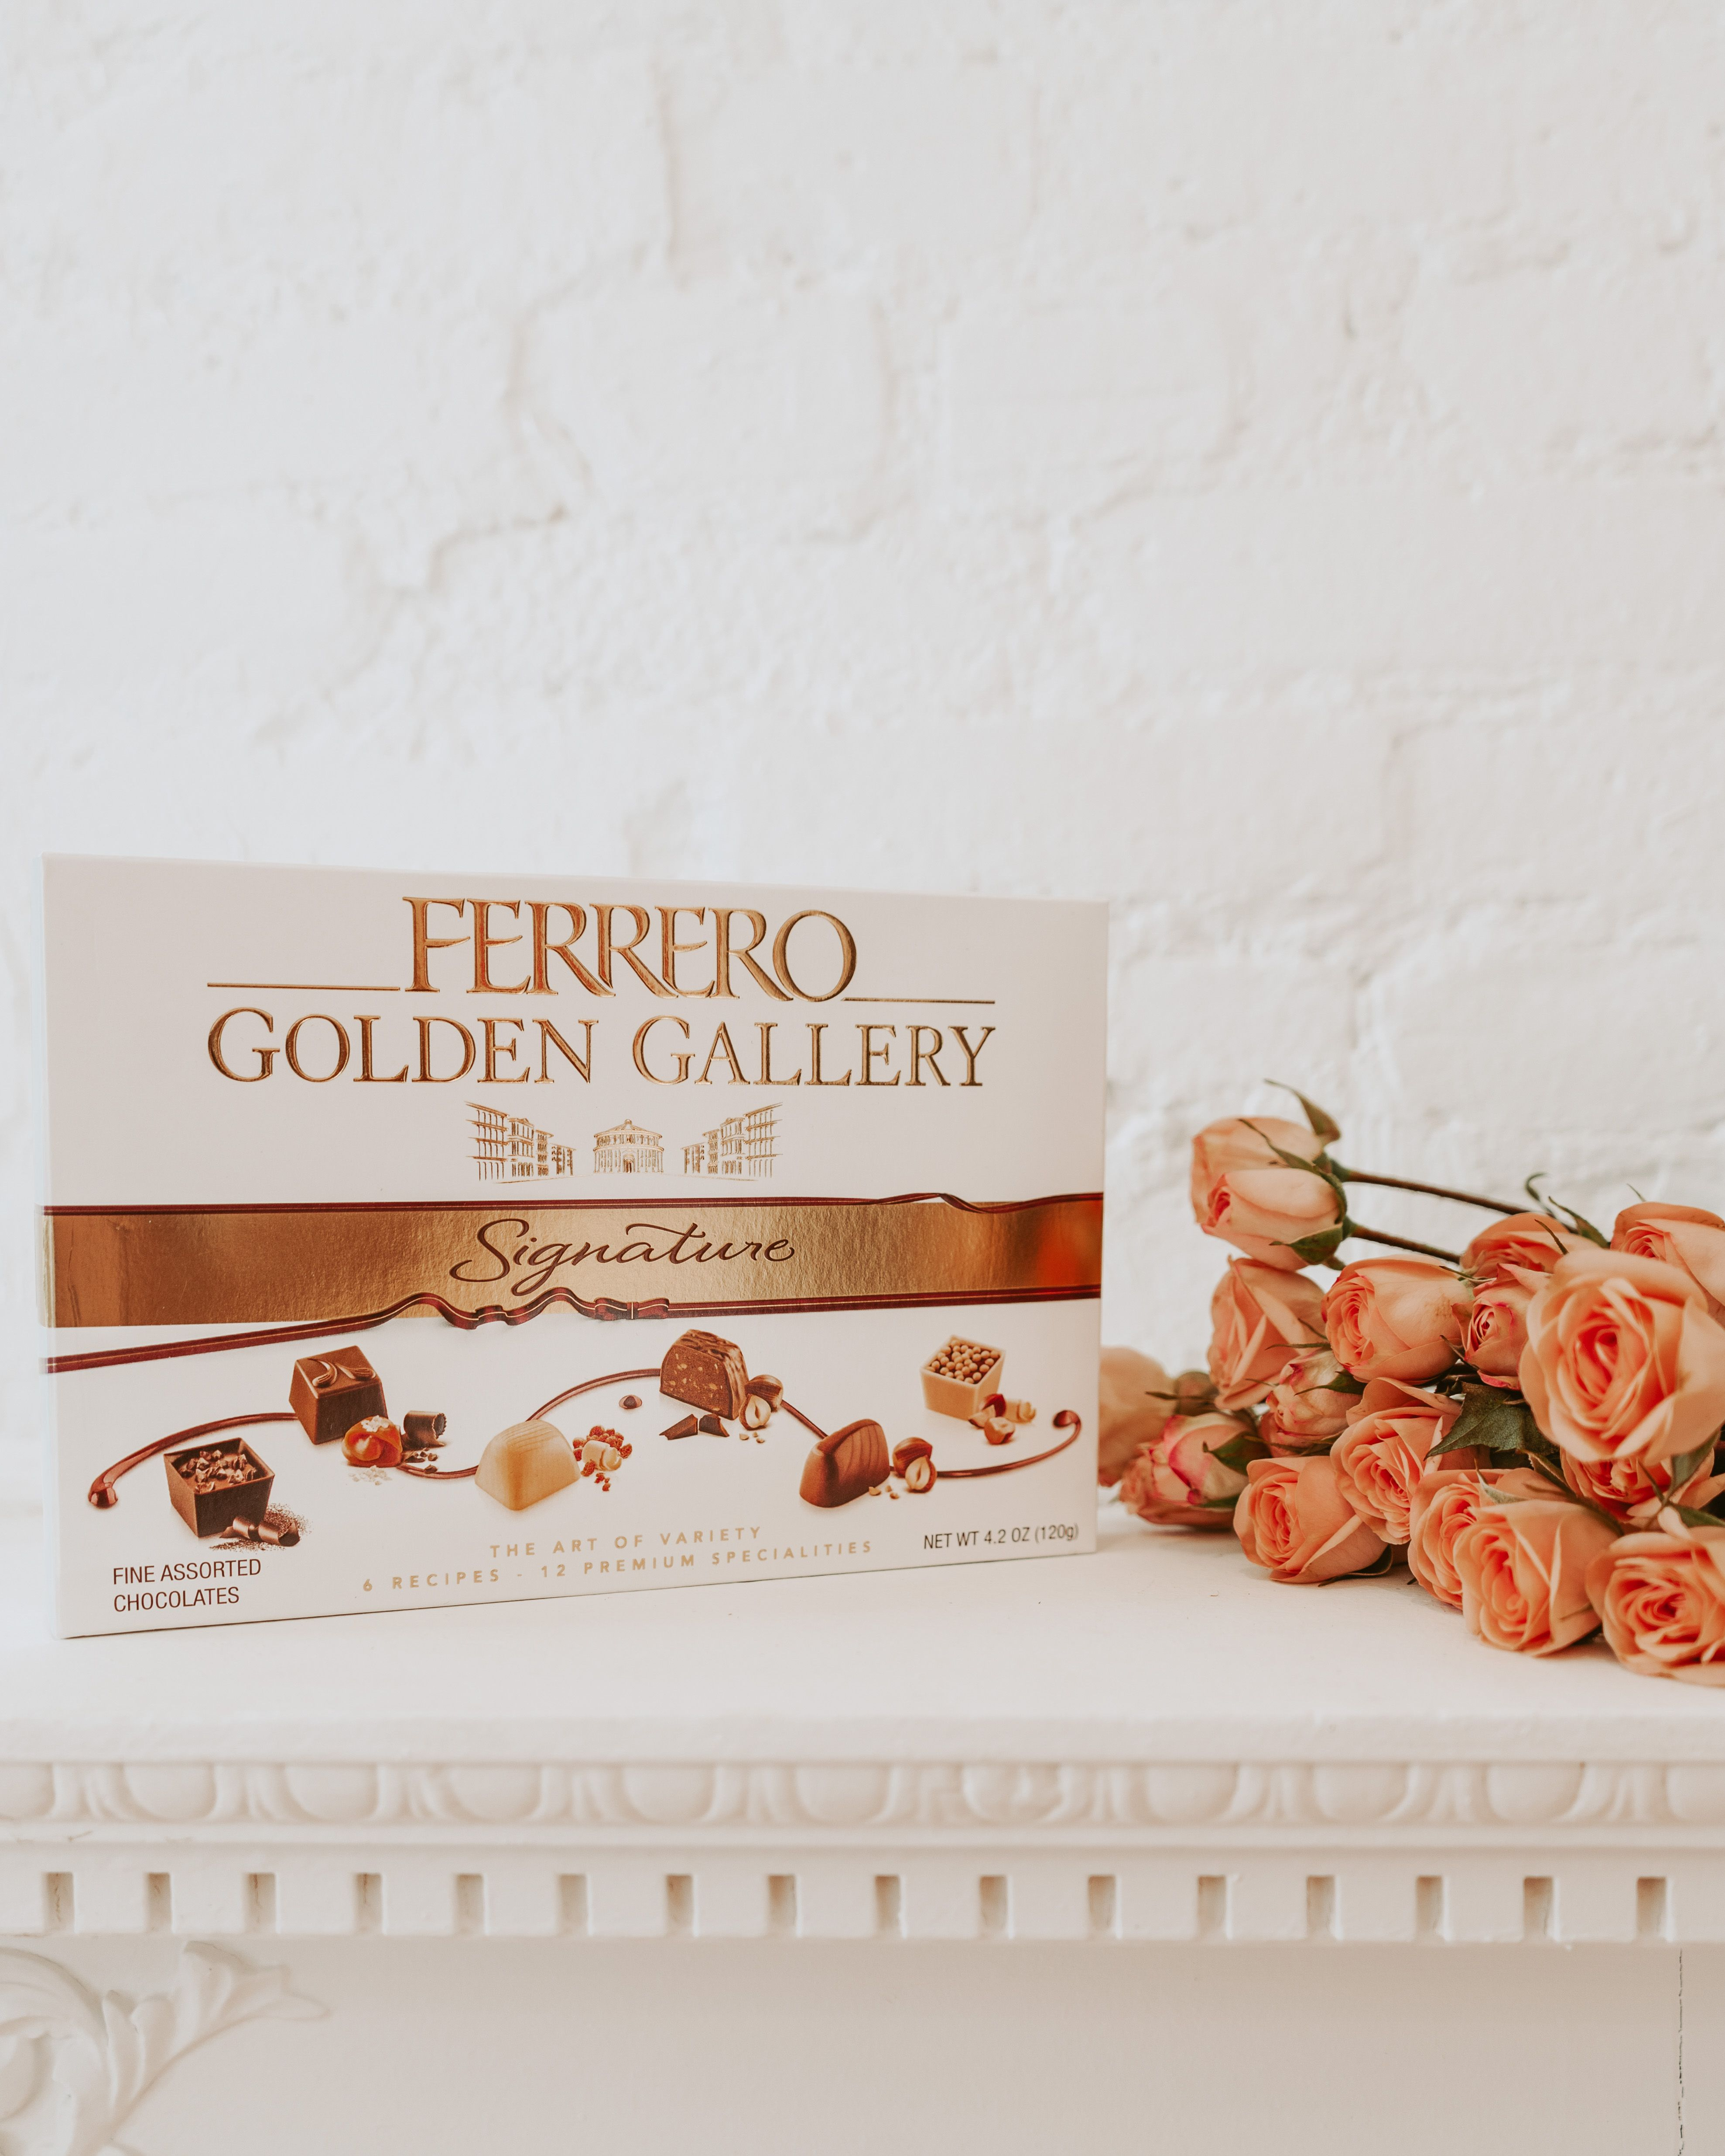 Find Ferrero Golden Gallery Signature Chocolate Work Of Art At Walgreens For Valentine S Day Valentines Hawaiian Tattoo Chocolate Work